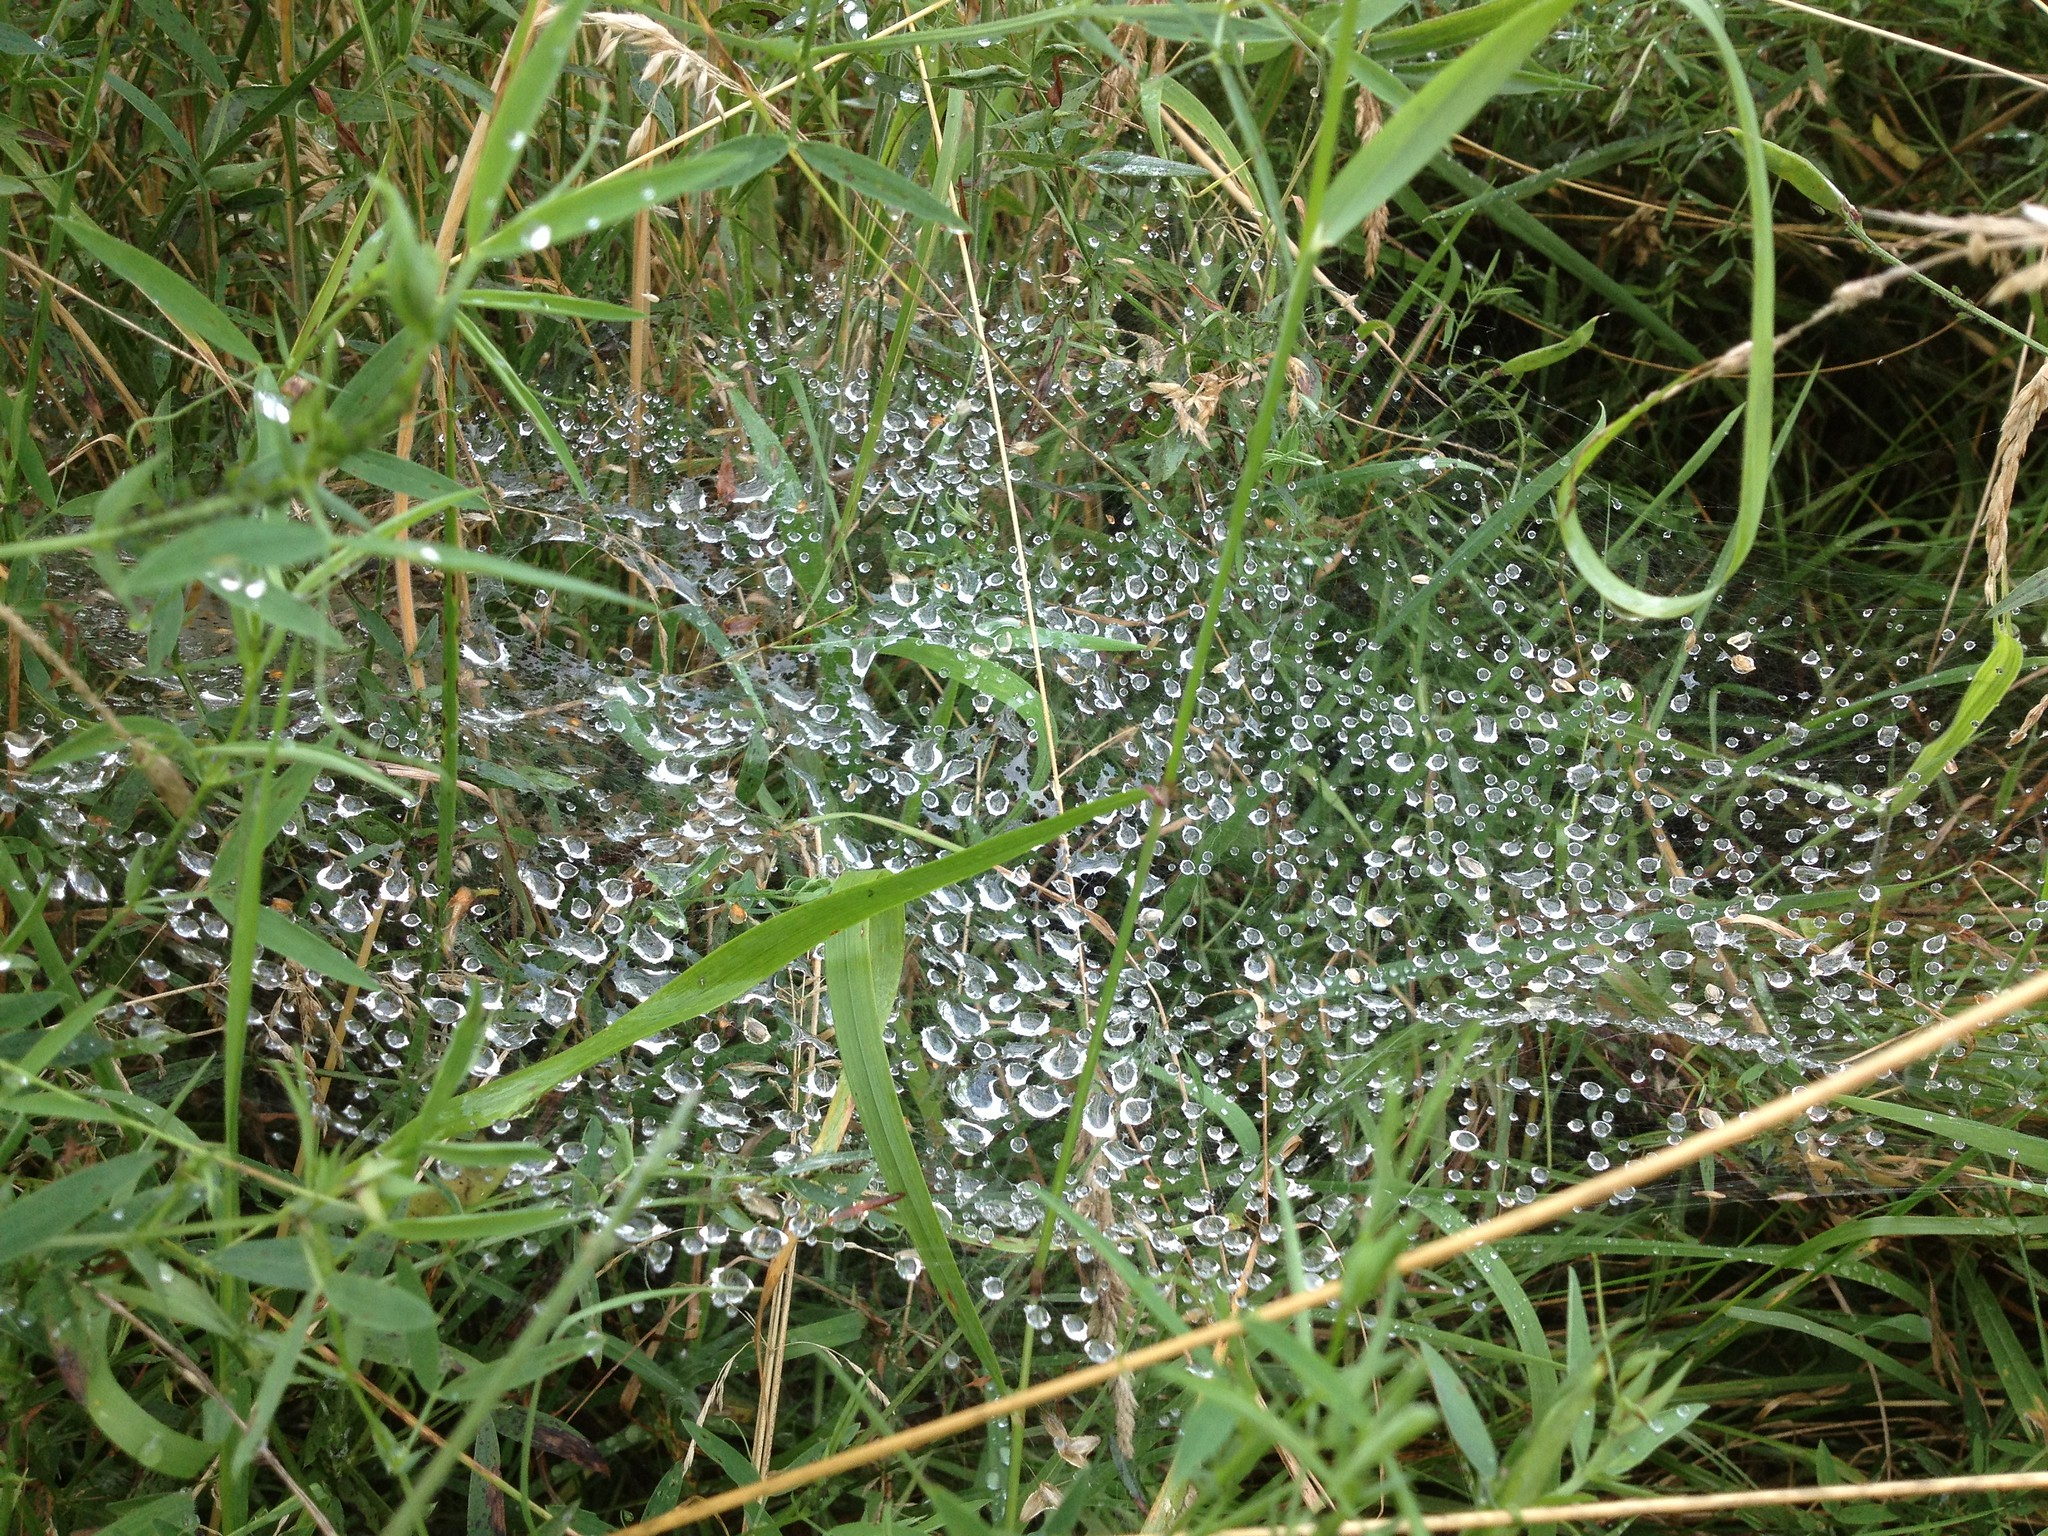 Water droplets on spider's web